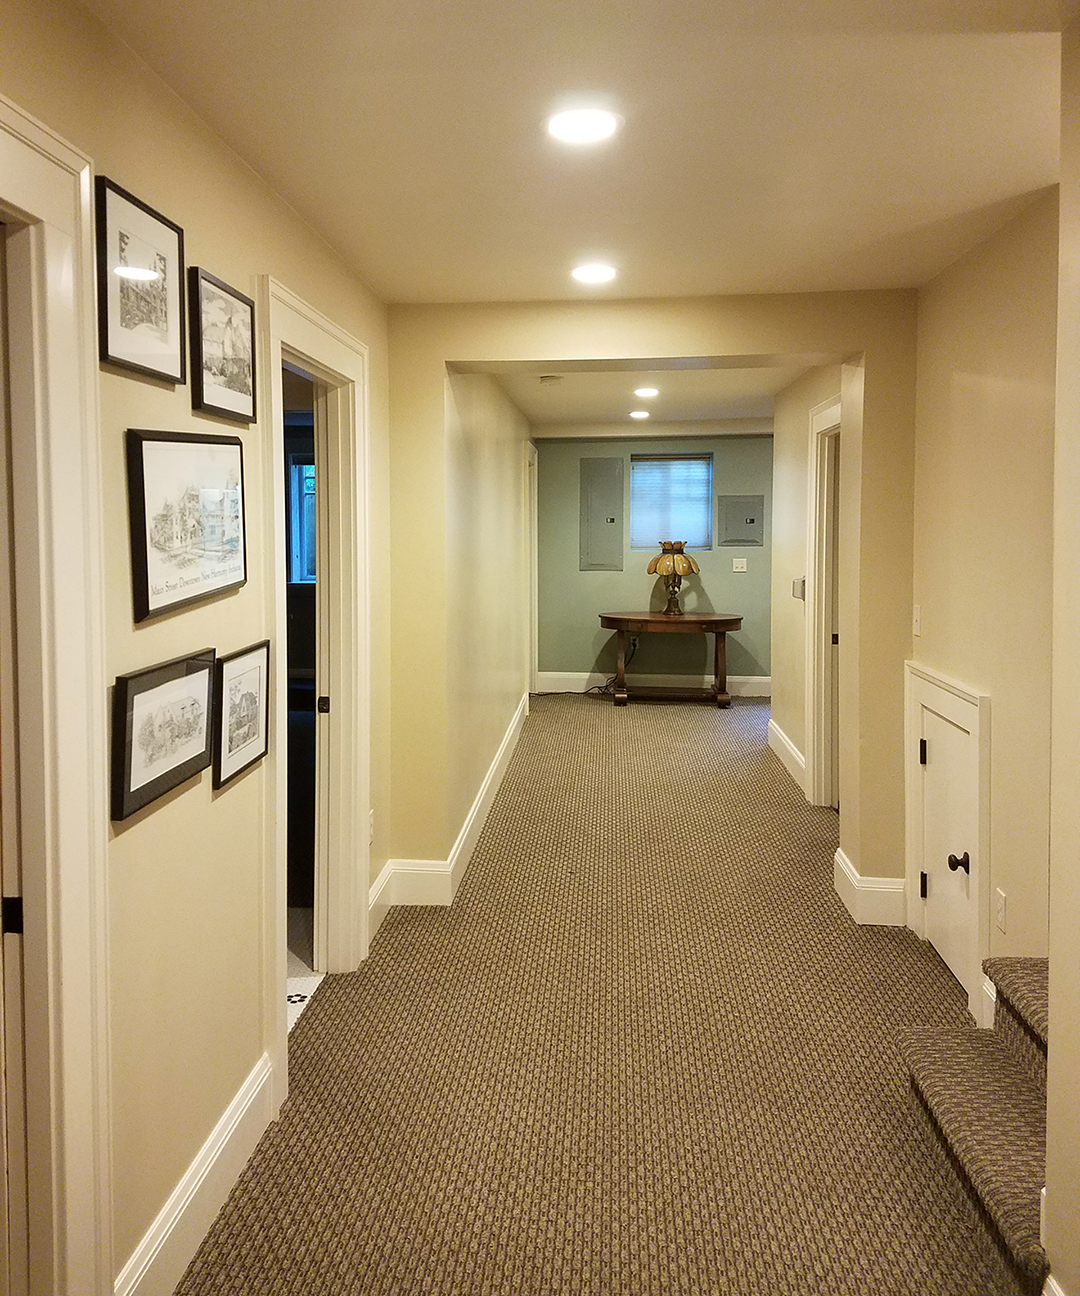 Halway of home with freshly painted lined colored walls